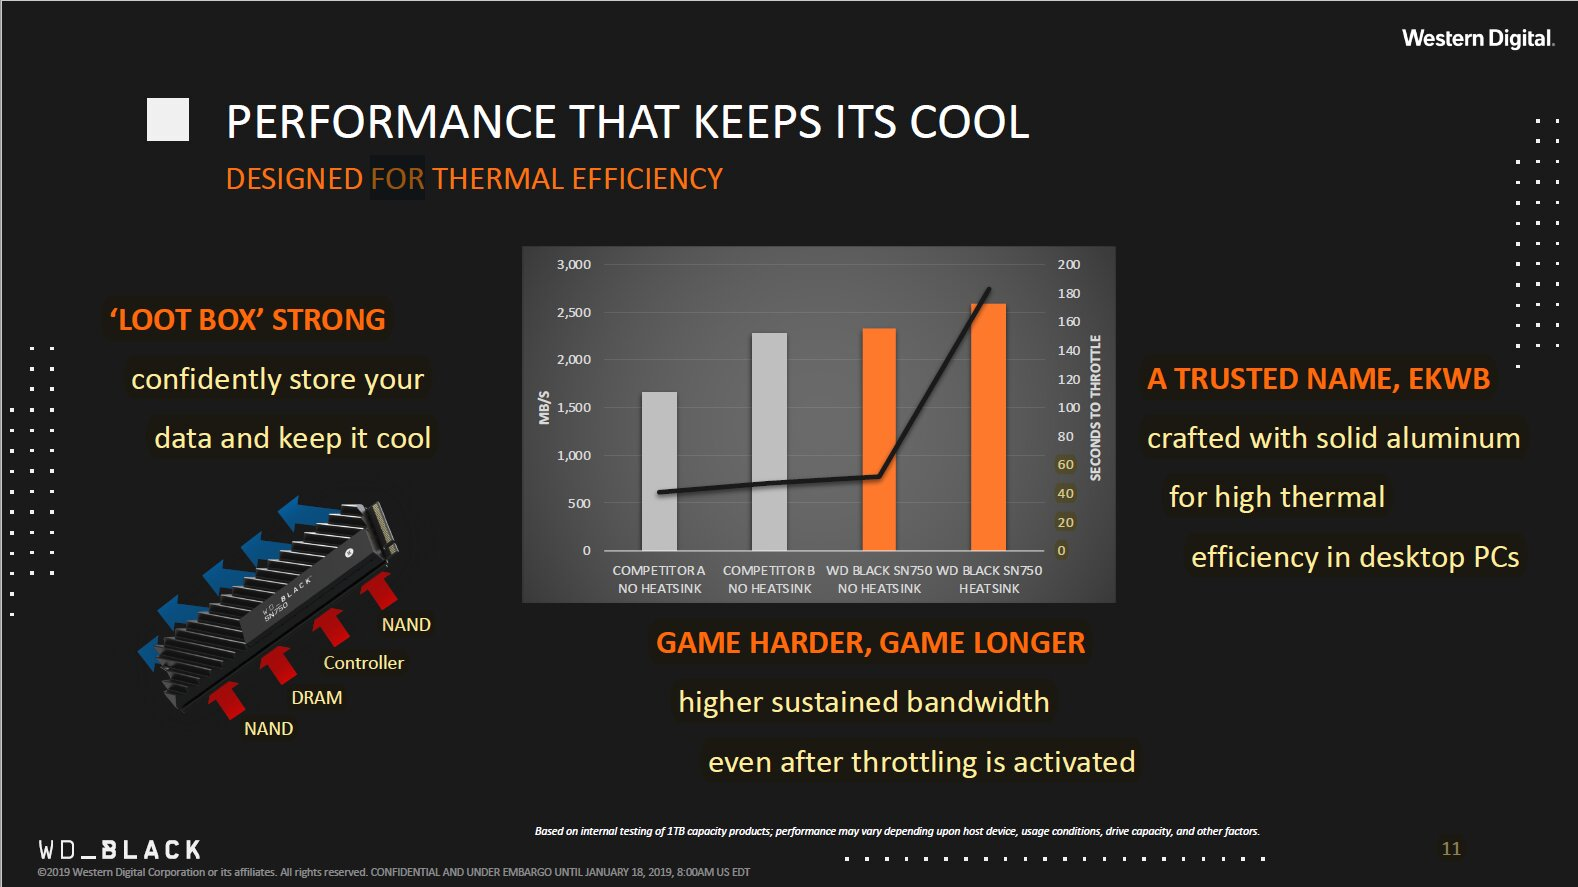 Designed for thermal efficiency